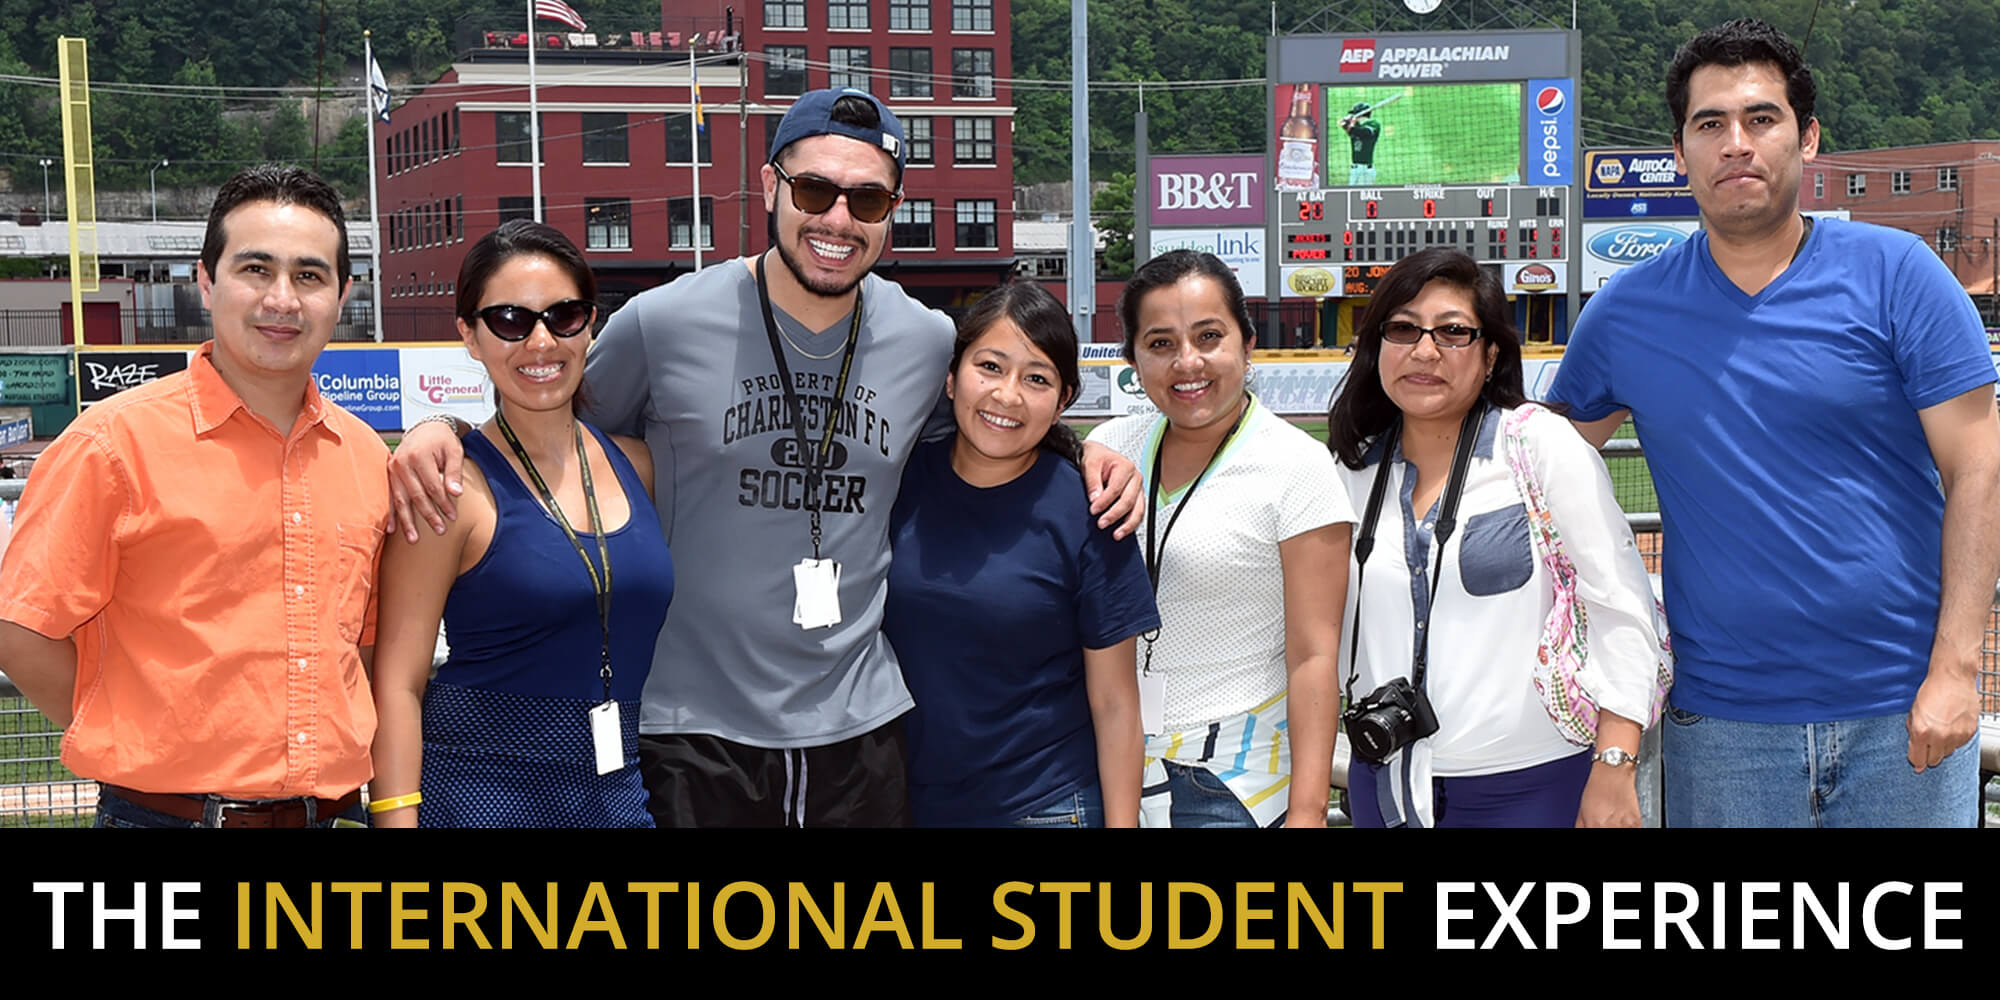 International - The International Student Experience